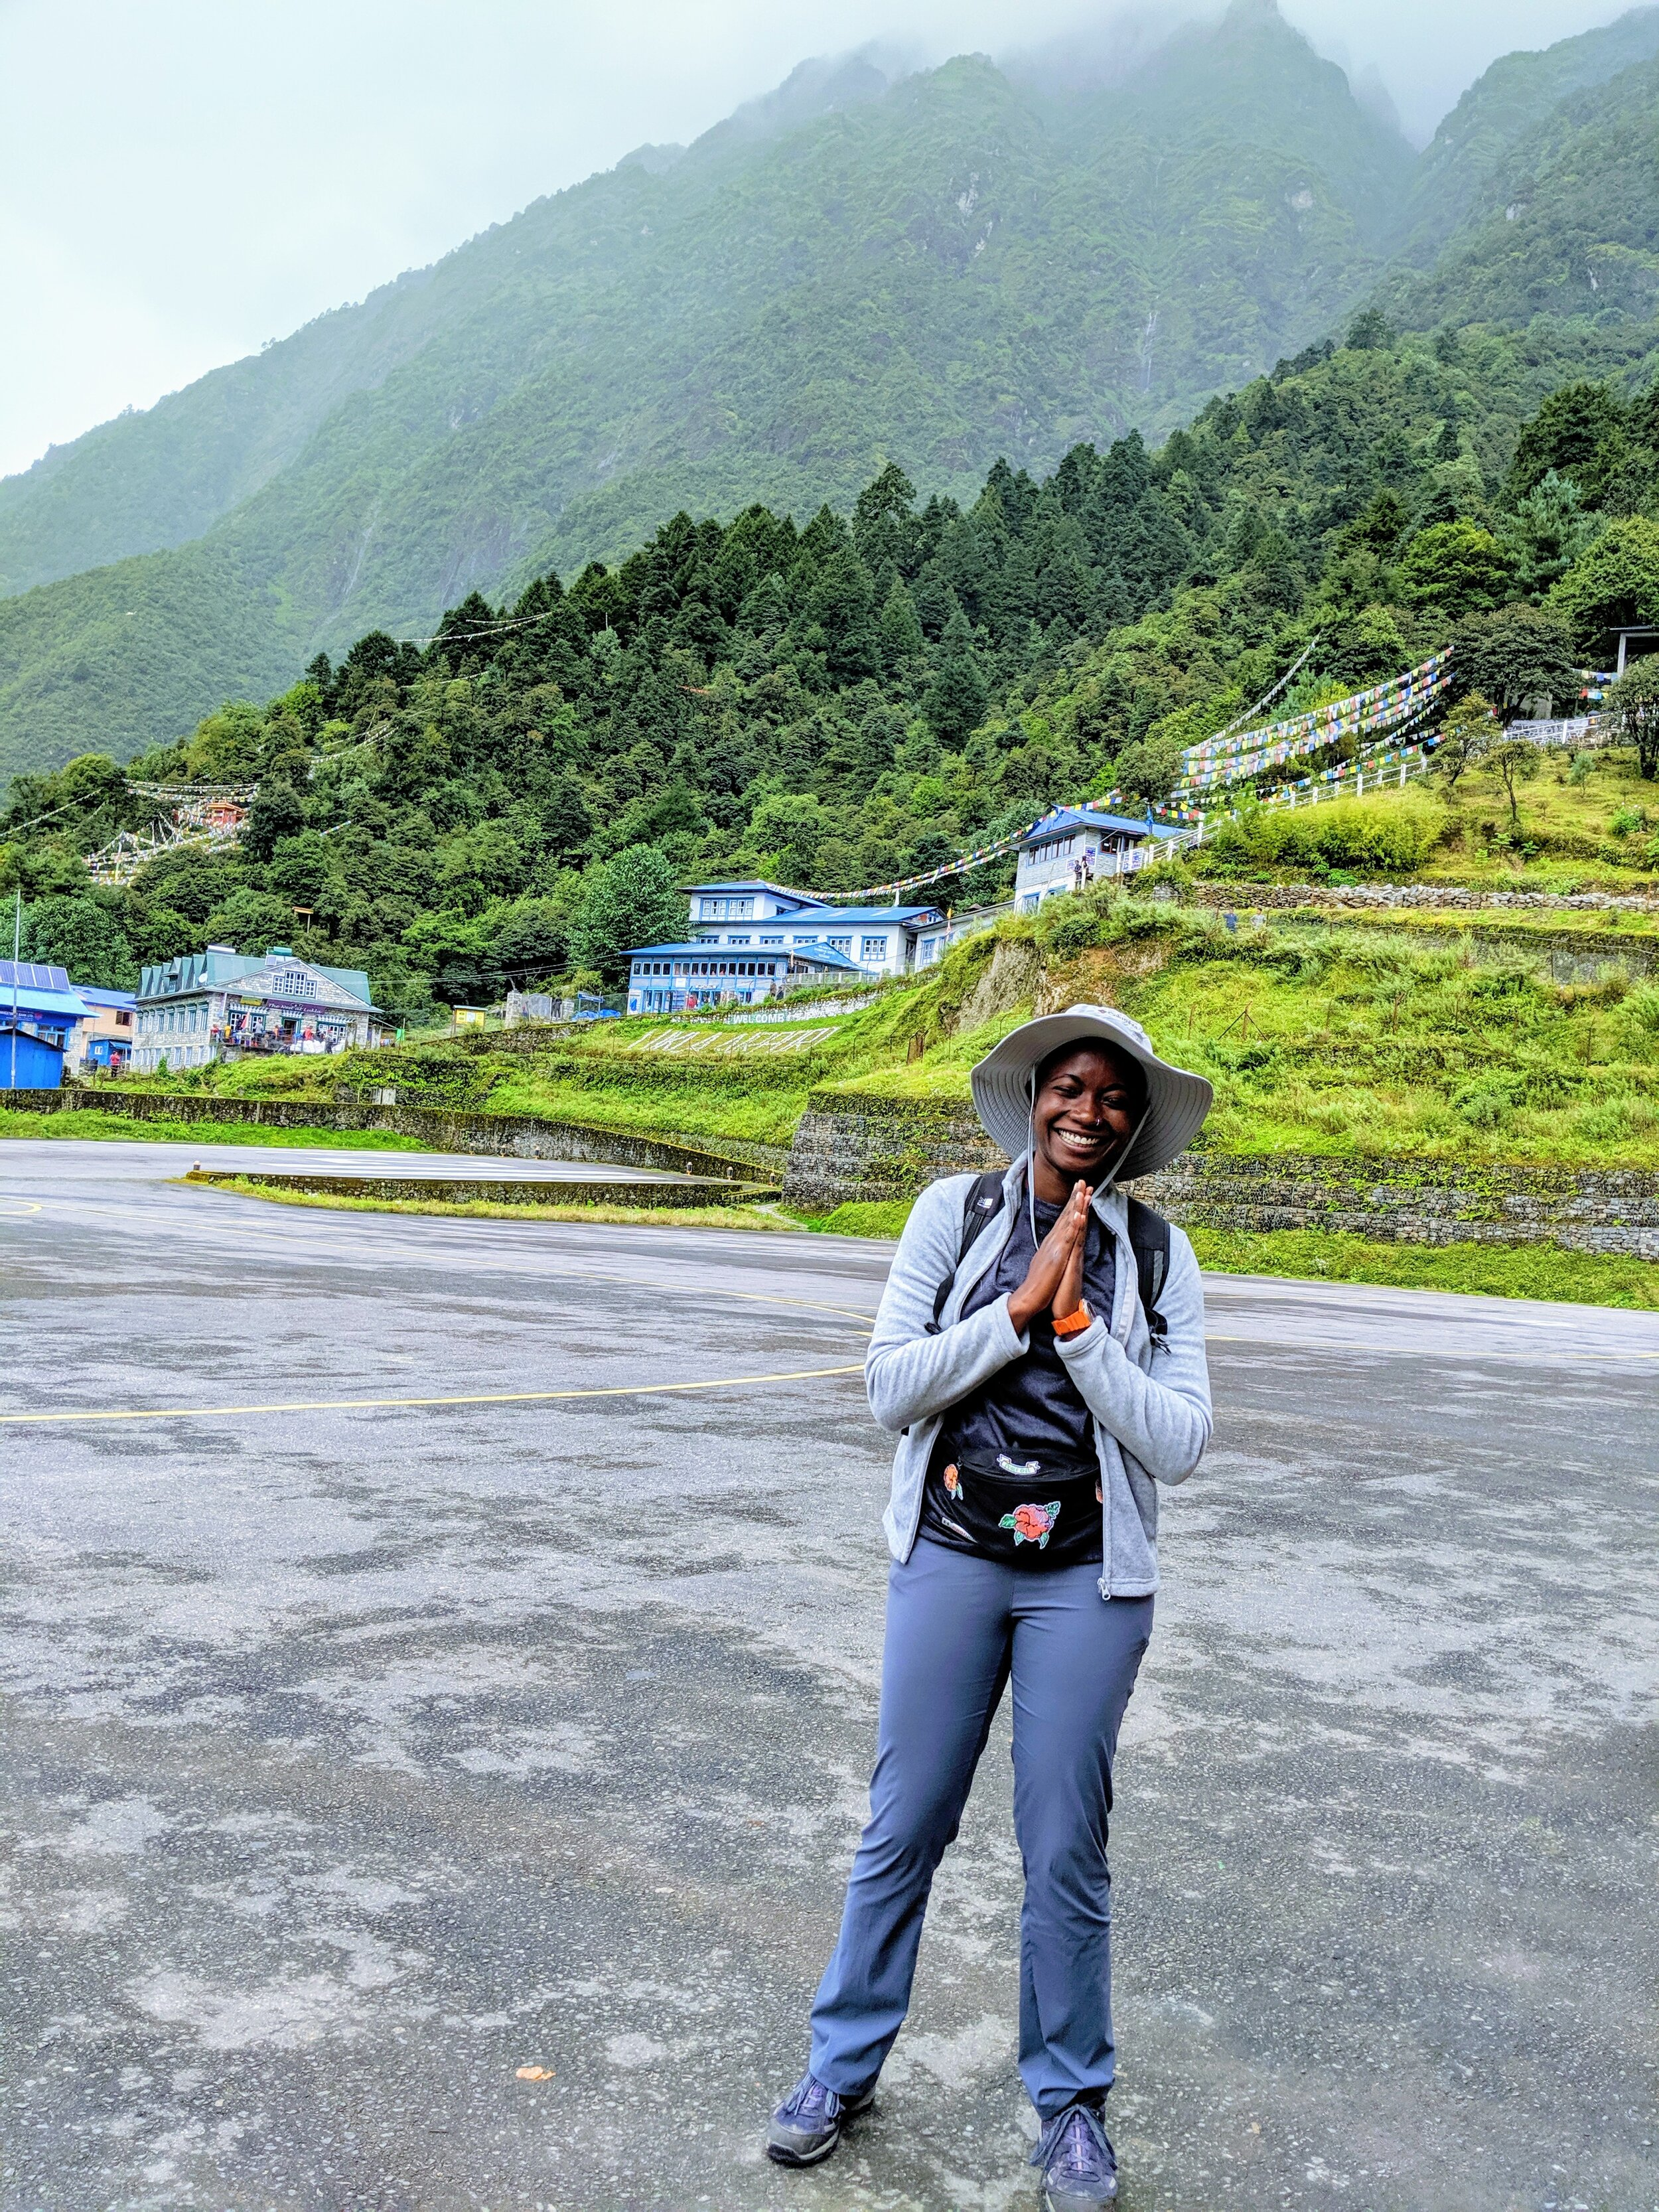 On the tarmac at Lukla Airport, elated at a safe journey